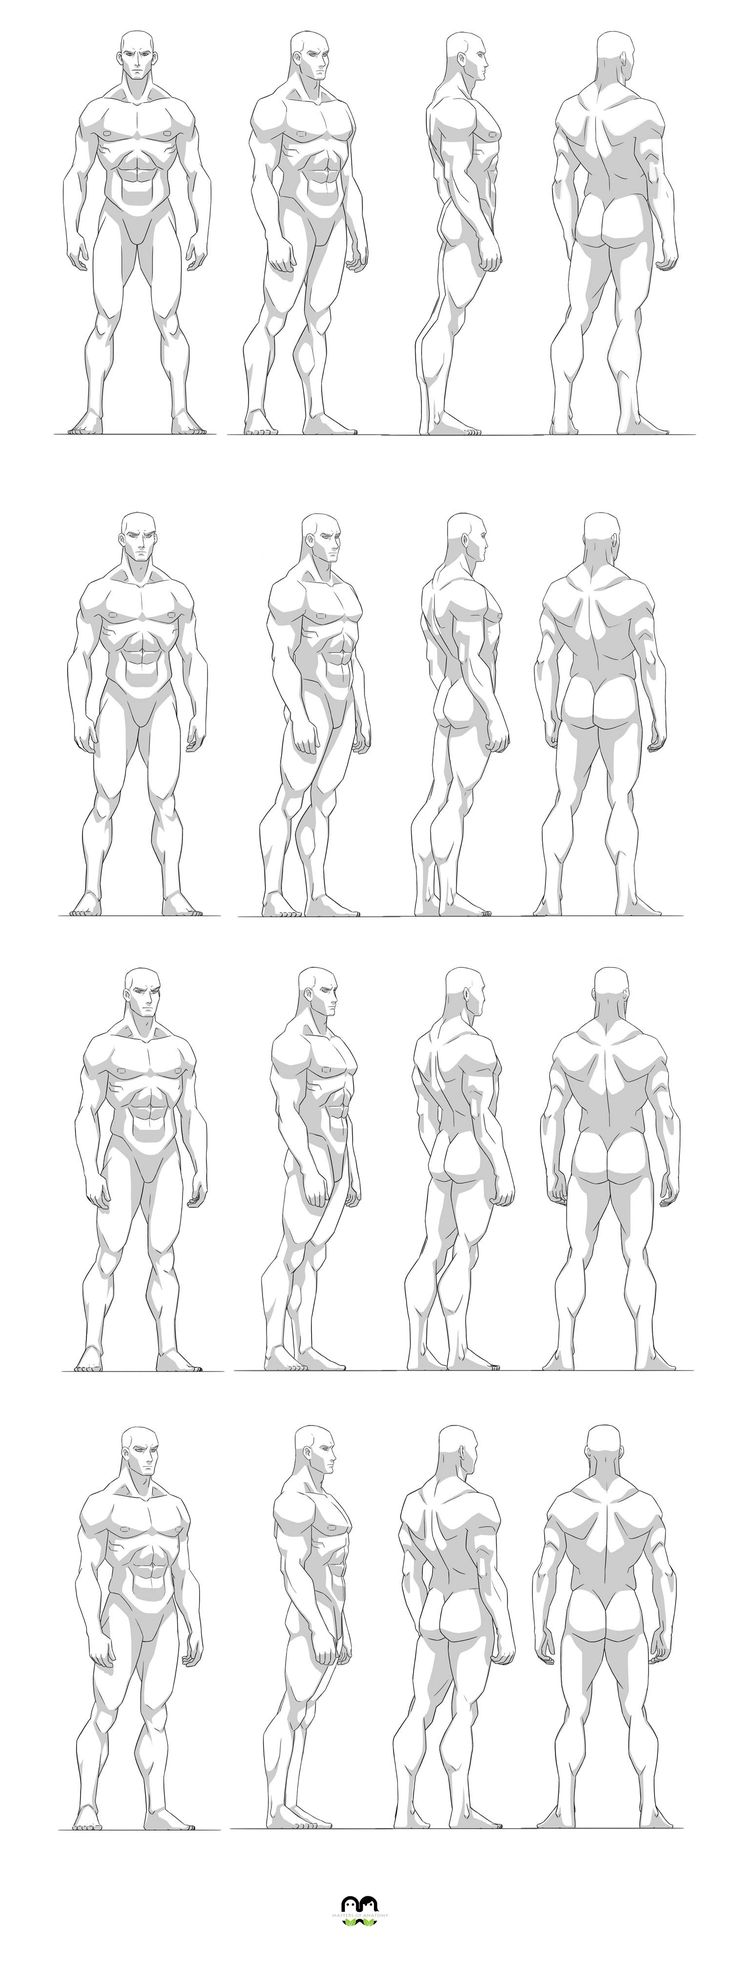 Art of Masters of Anatomy* • Purchase | (http://mastersofanatomy.com/paypal) ★ || CHARACTER DESIGN REFERENCES™ (https://www.facebook.com/CharacterDesignReferences & https://www.pinterest.com/characterdesigh) • Love Character Design? Join the #CDChallenge